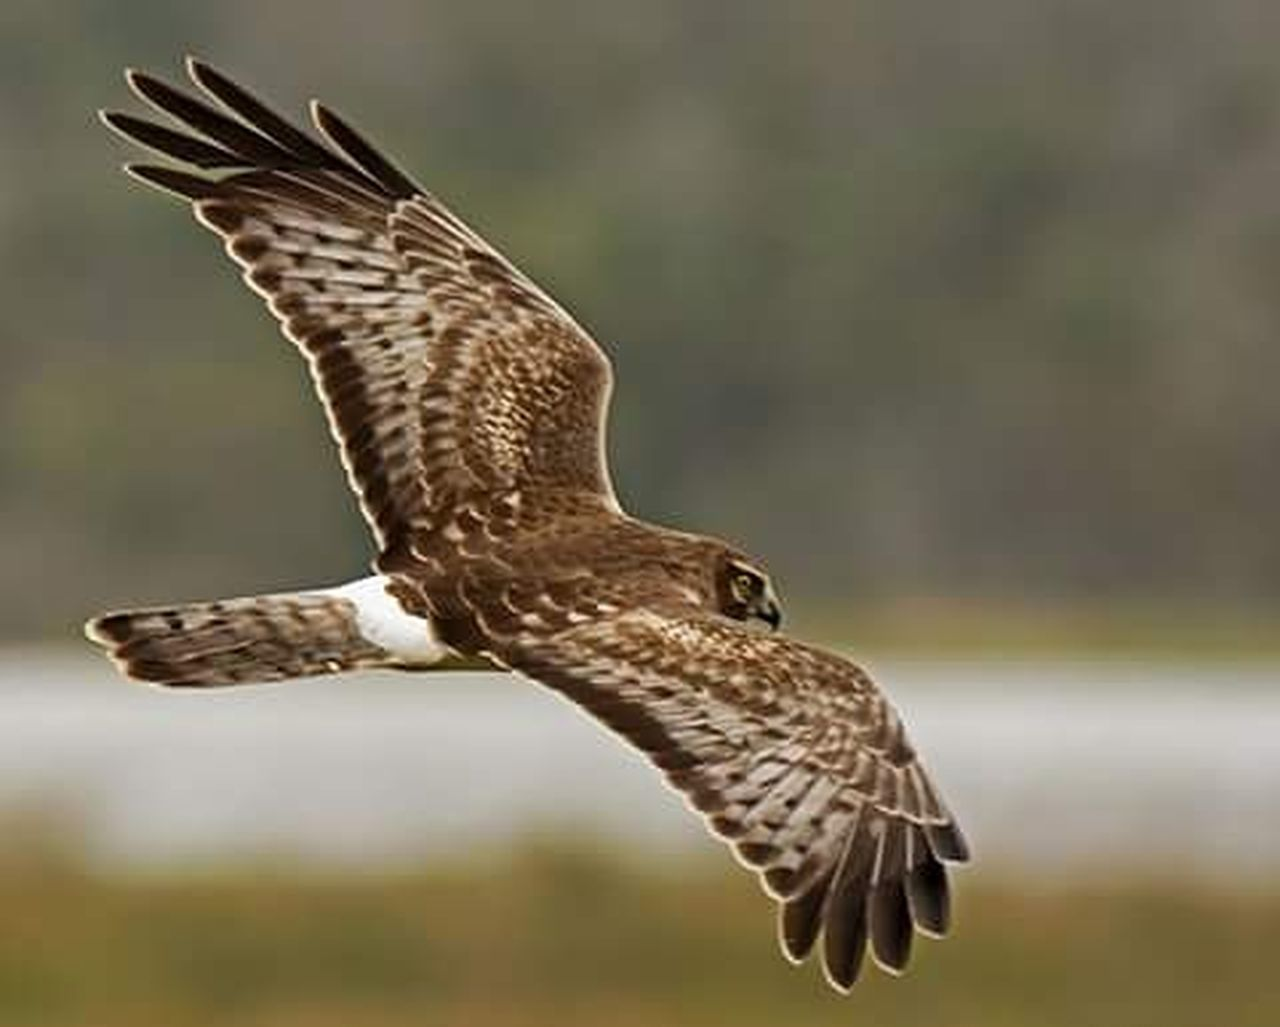 bird, flying, animal wildlife, one animal, spread wings, bird of prey, animals in the wild, mid-air, nature, hawk - bird, focus on foreground, day, no people, falcon - bird, outdoors, owl, animal themes, beauty in nature, full length, close-up